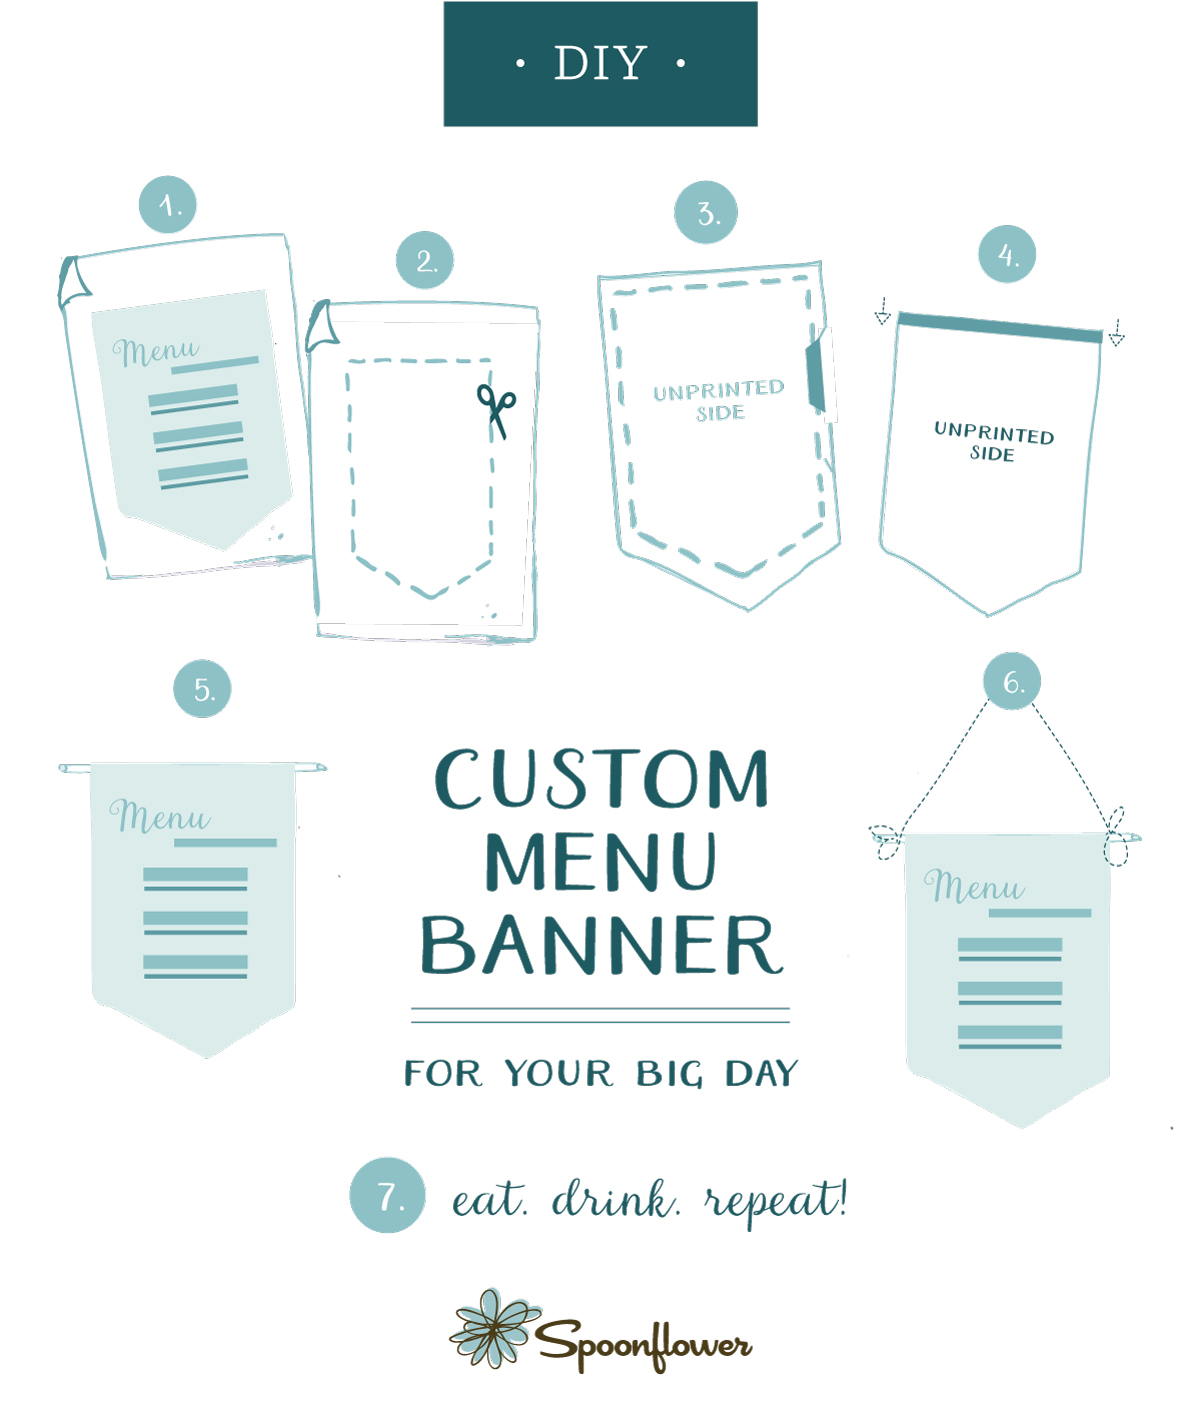 DIY Custom Menu Banner | Spoonflower Blog